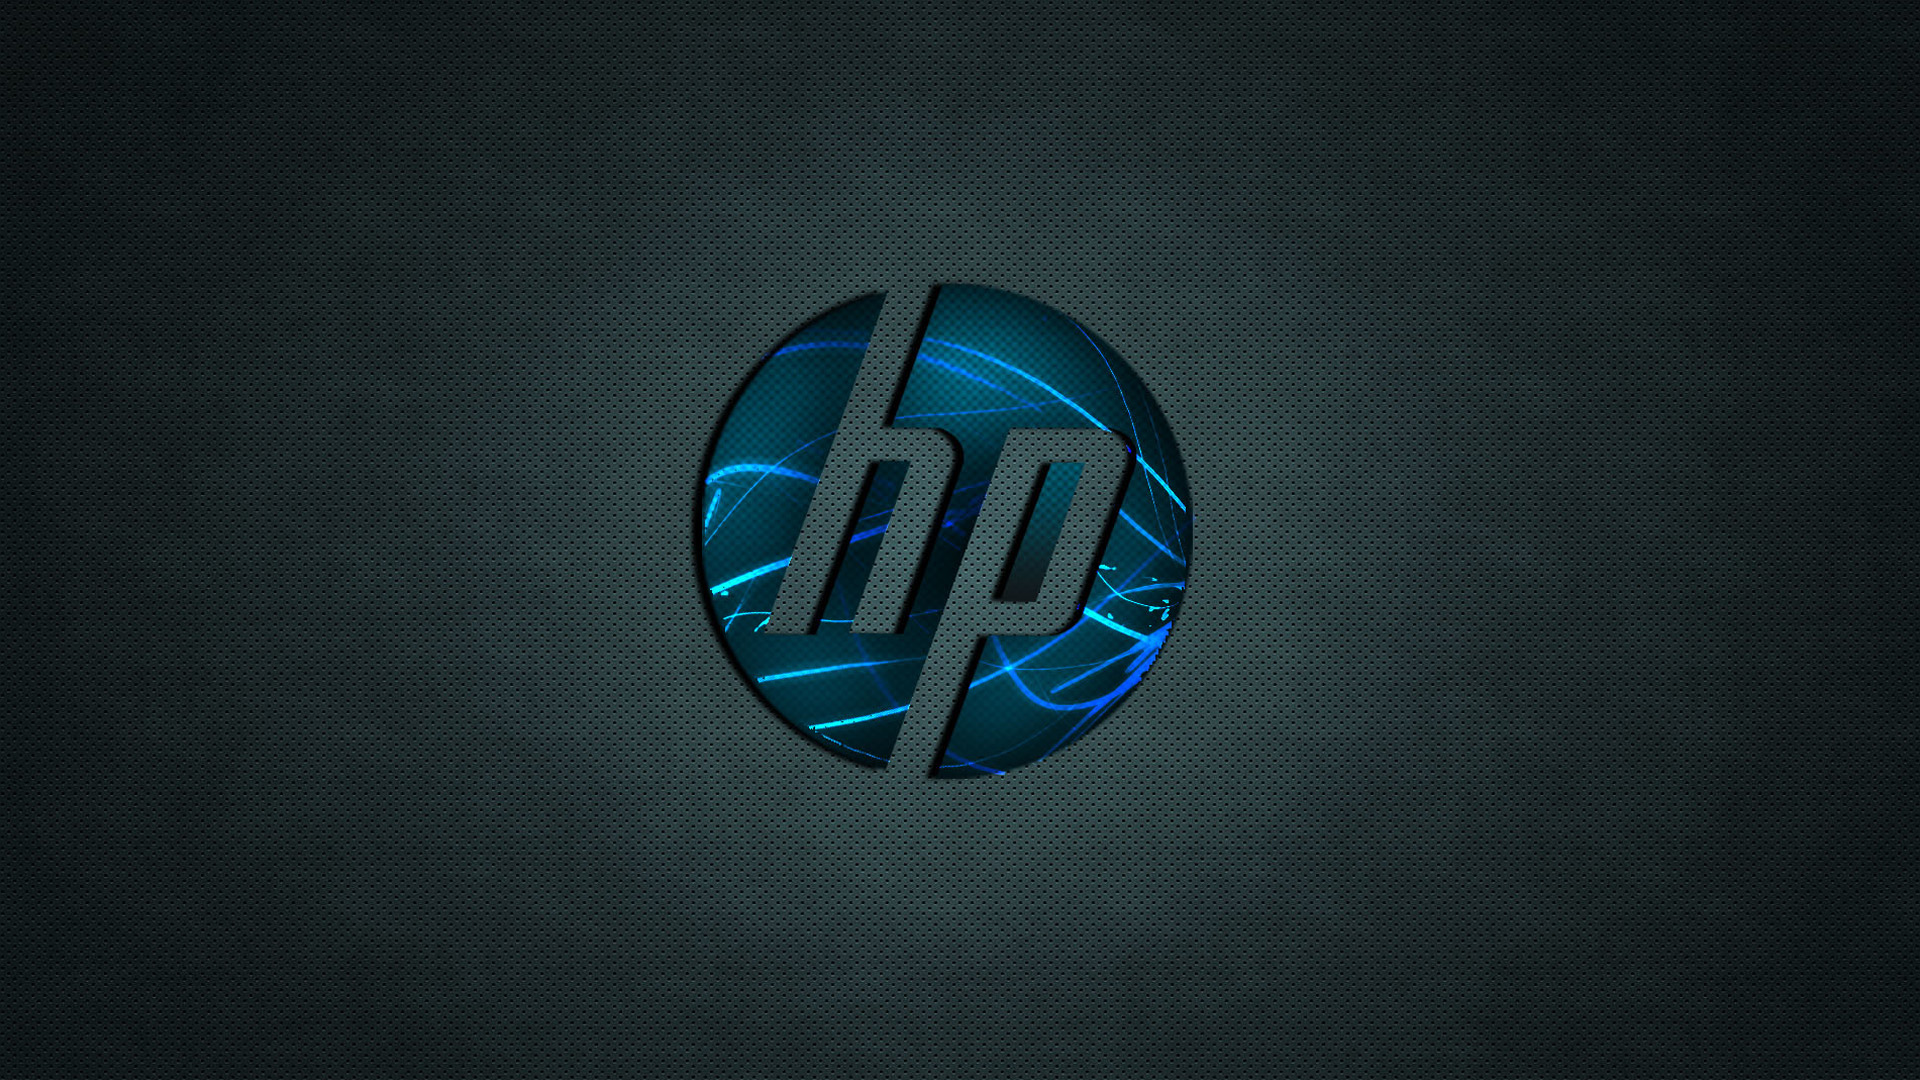 Hp logo wallpapers pixelstalk net - Hp wallpaper hd ...